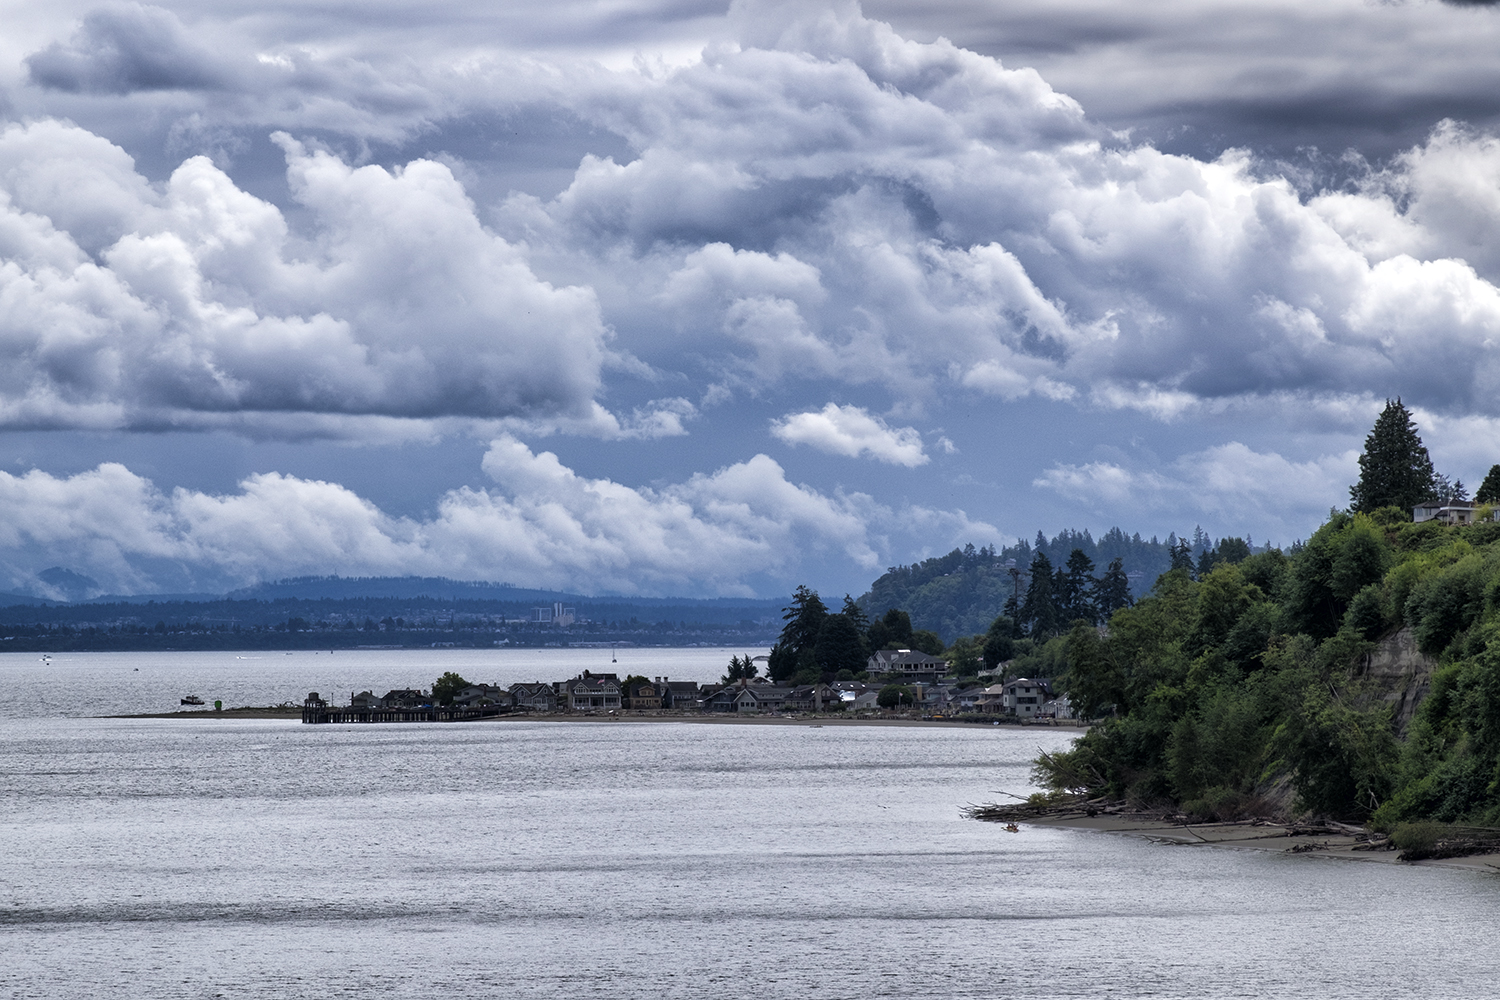 160709 Whidbey 137-1.jpg